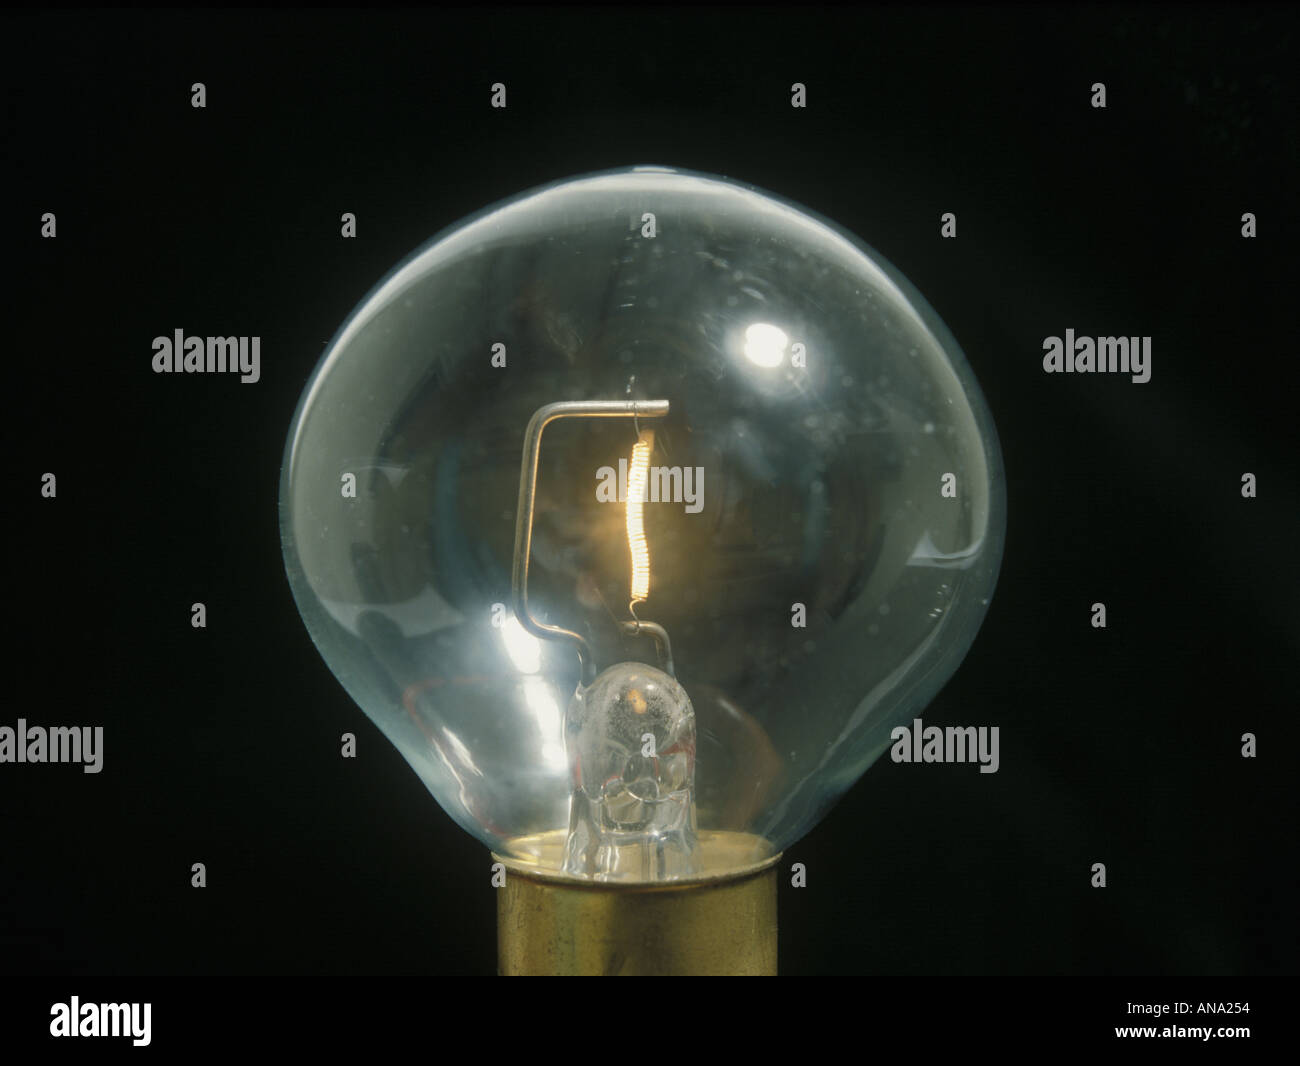 12 volt tungsten filament lamp - Stock Image